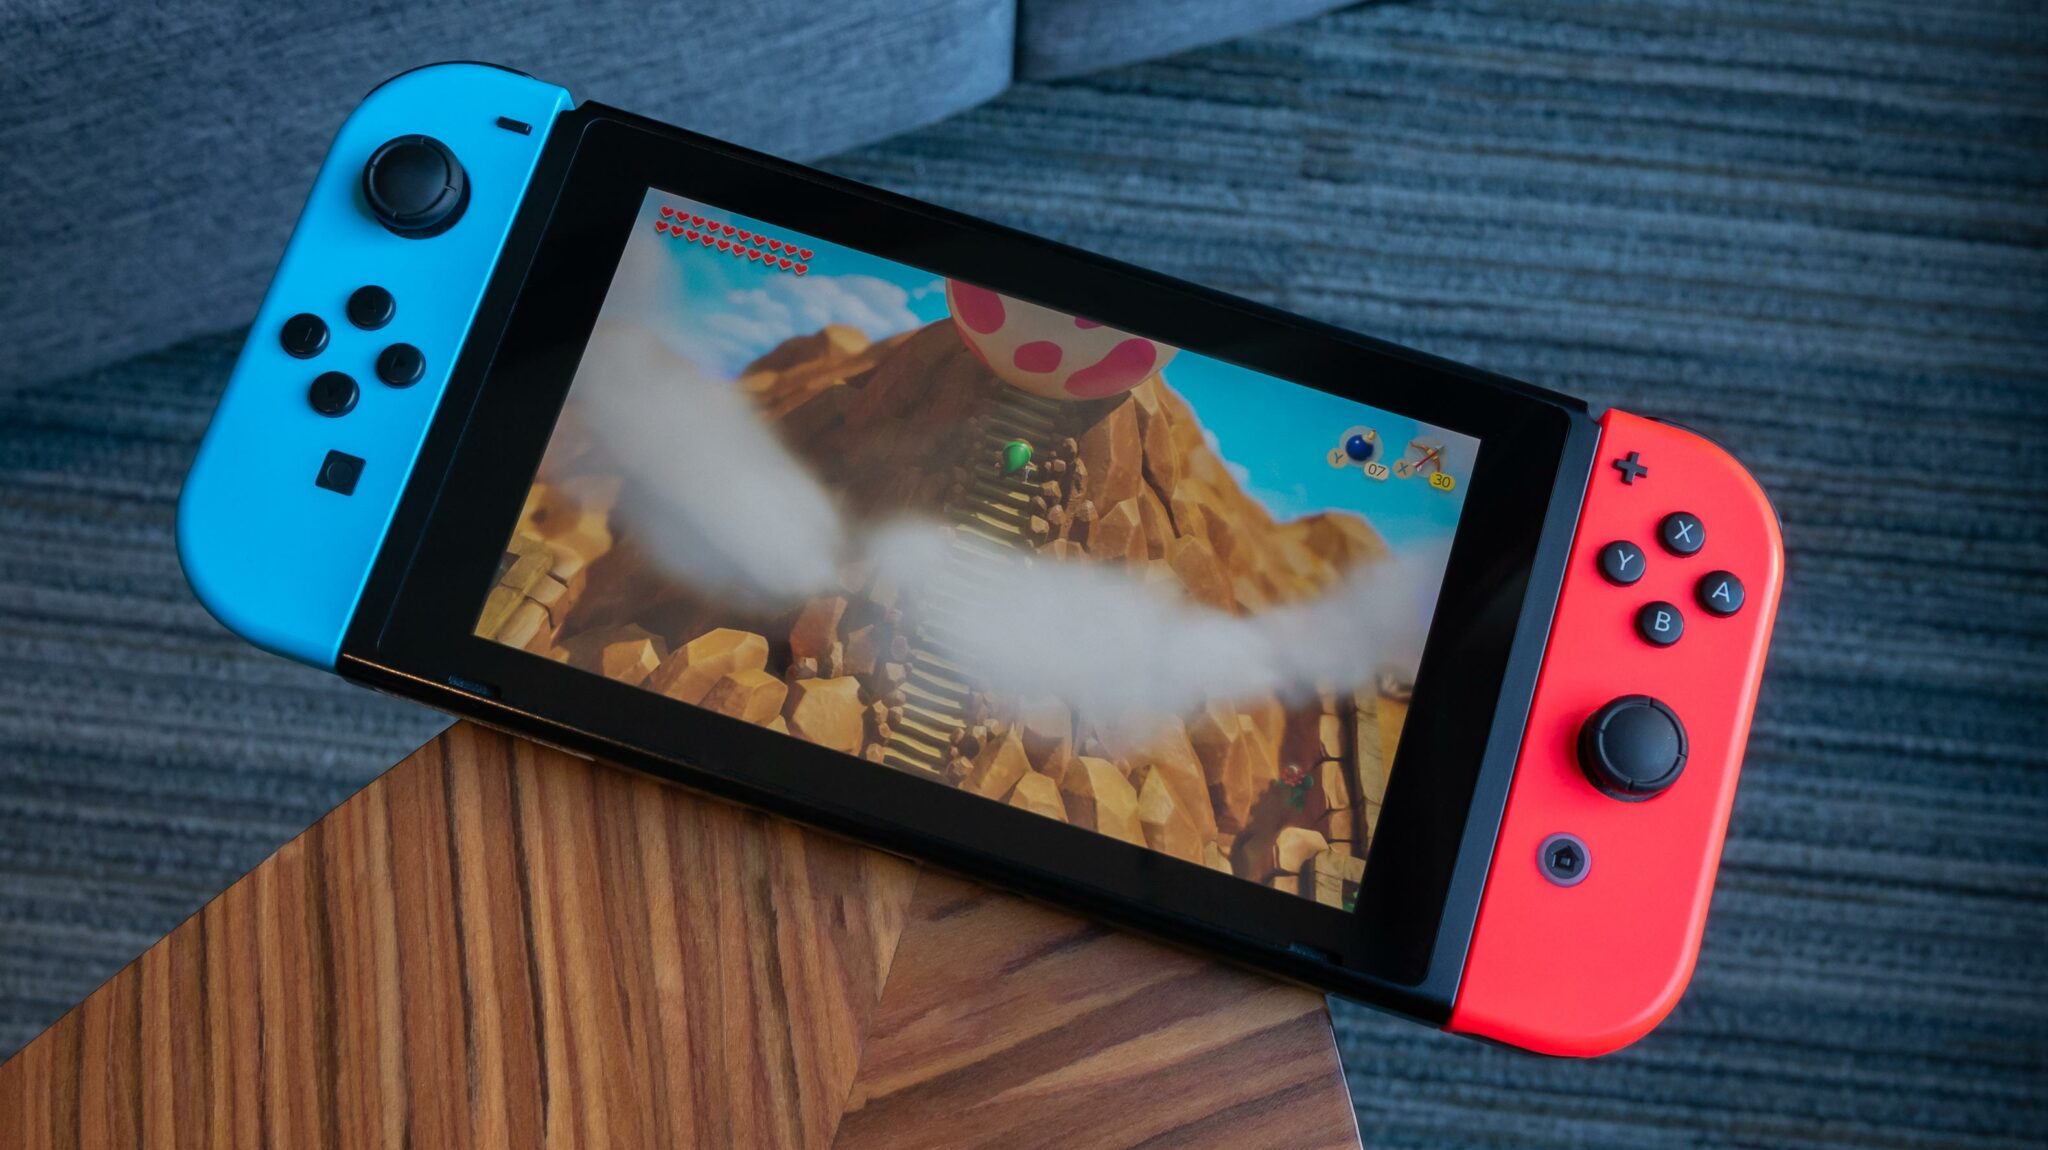 Roughly 5.7 million households bought a second Nintendo Switch last year